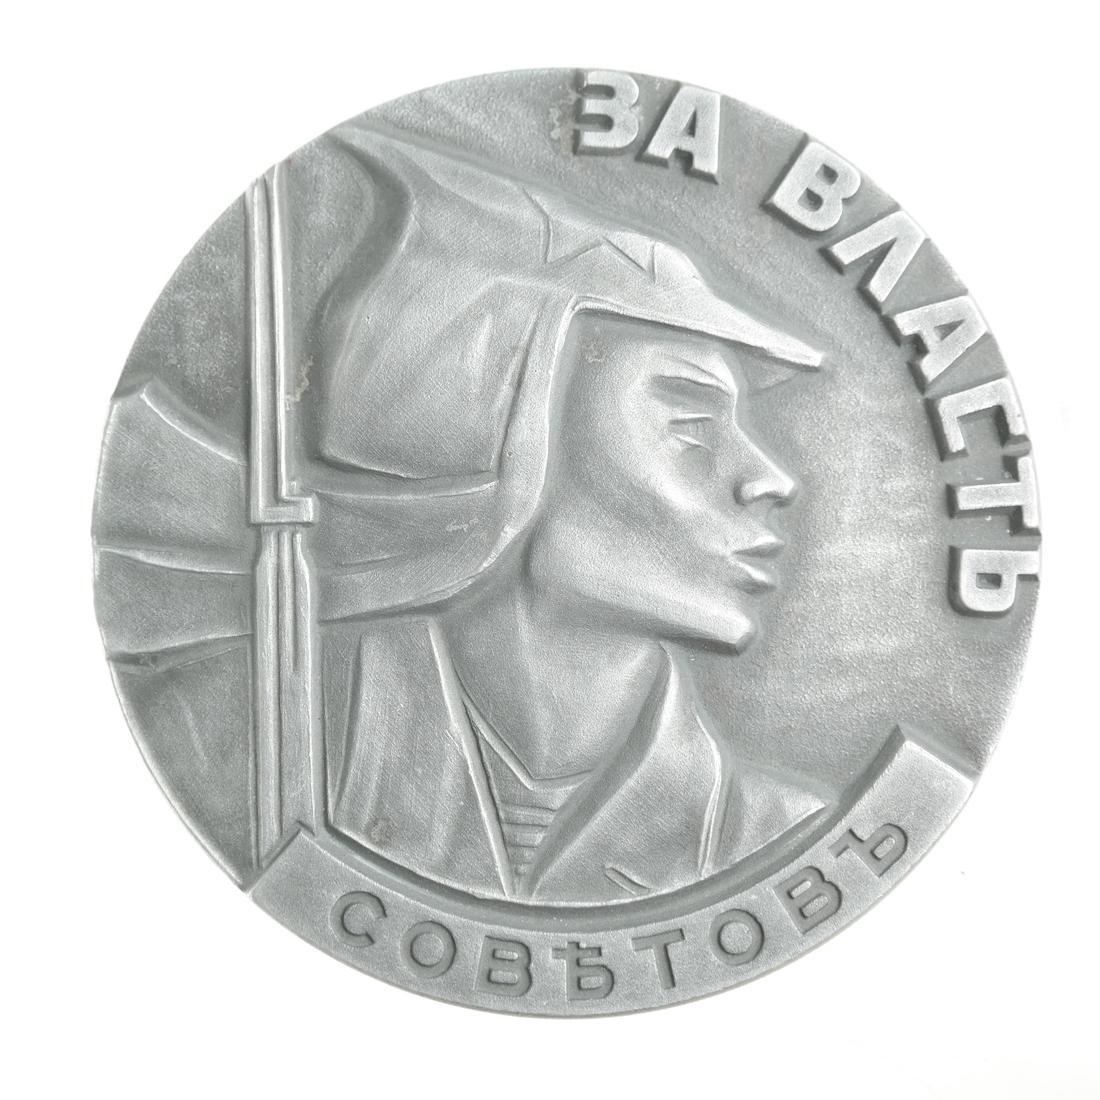 SOVIET UNION. TO SOVIET POWER! MEDALLION, 1967.